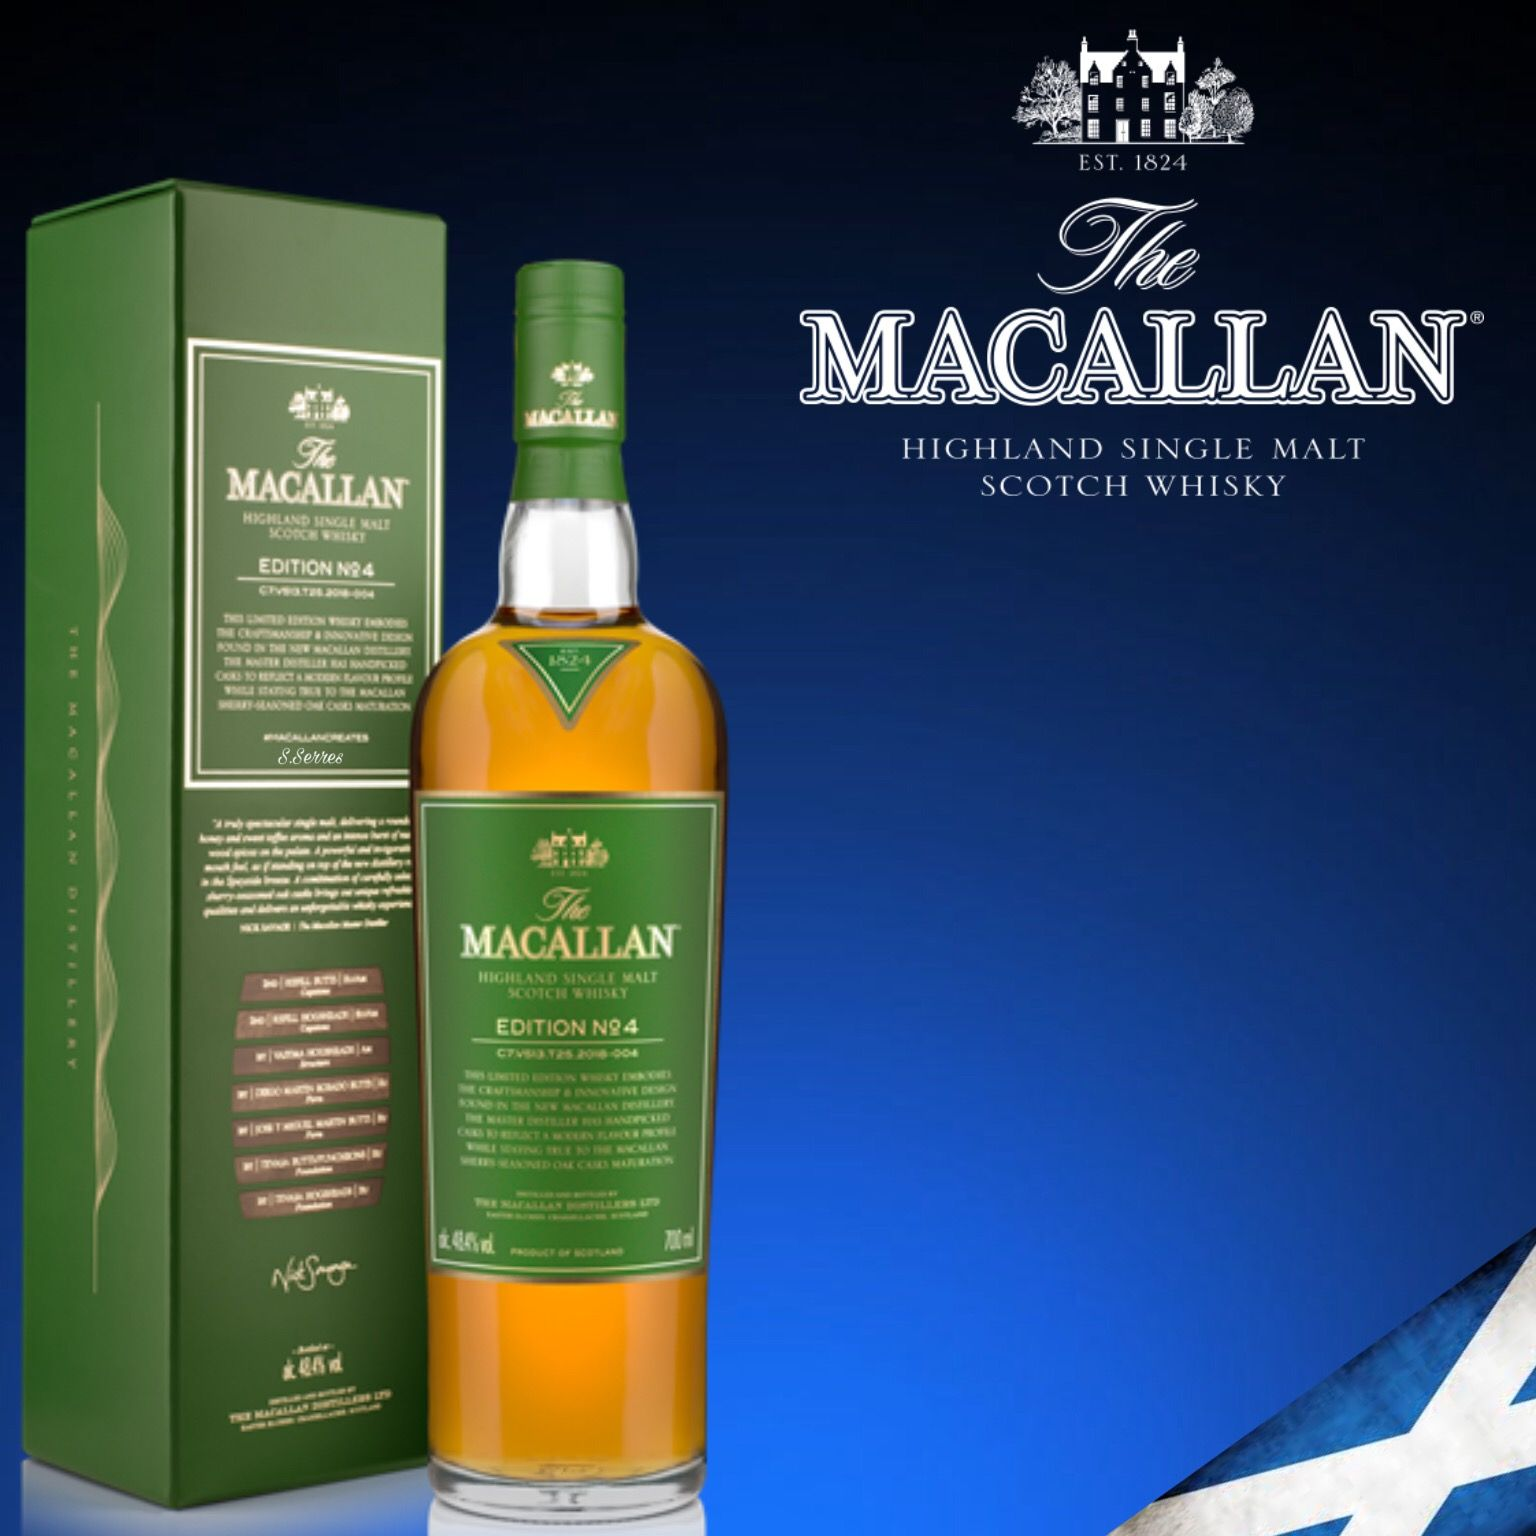 The Macallan Edition No 4 Is One Of The Best And Also One Of The Most Affordable To Buy Viski